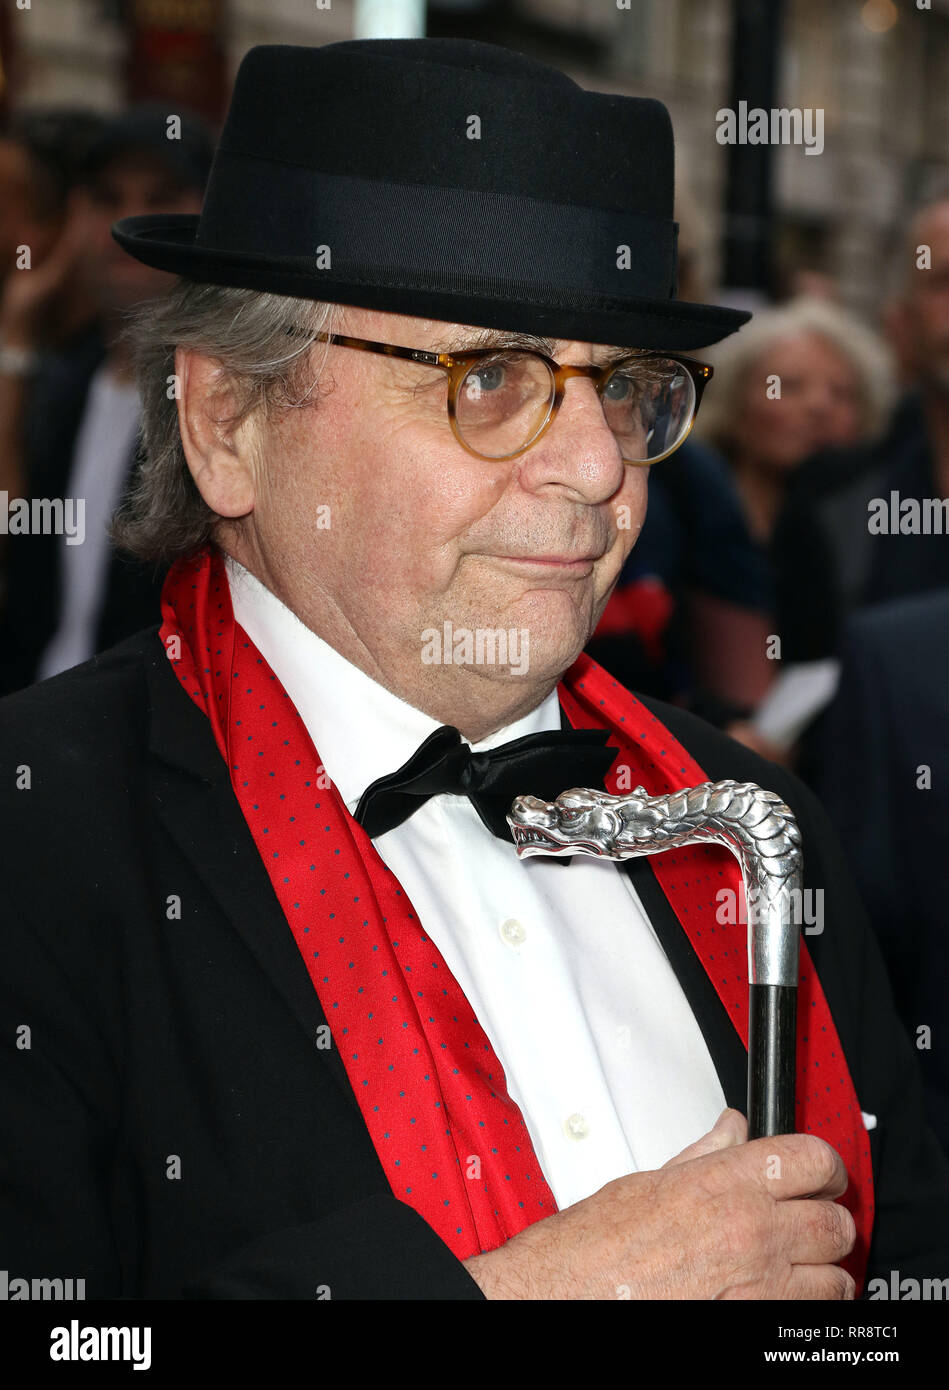 Jul 20, 2015 - London, England, UK - Frank Sinatra: The Man and His Music Press Night, at the Palladium - VIP Arrivals Photo Shows: Sylvester McCoy - Stock Image